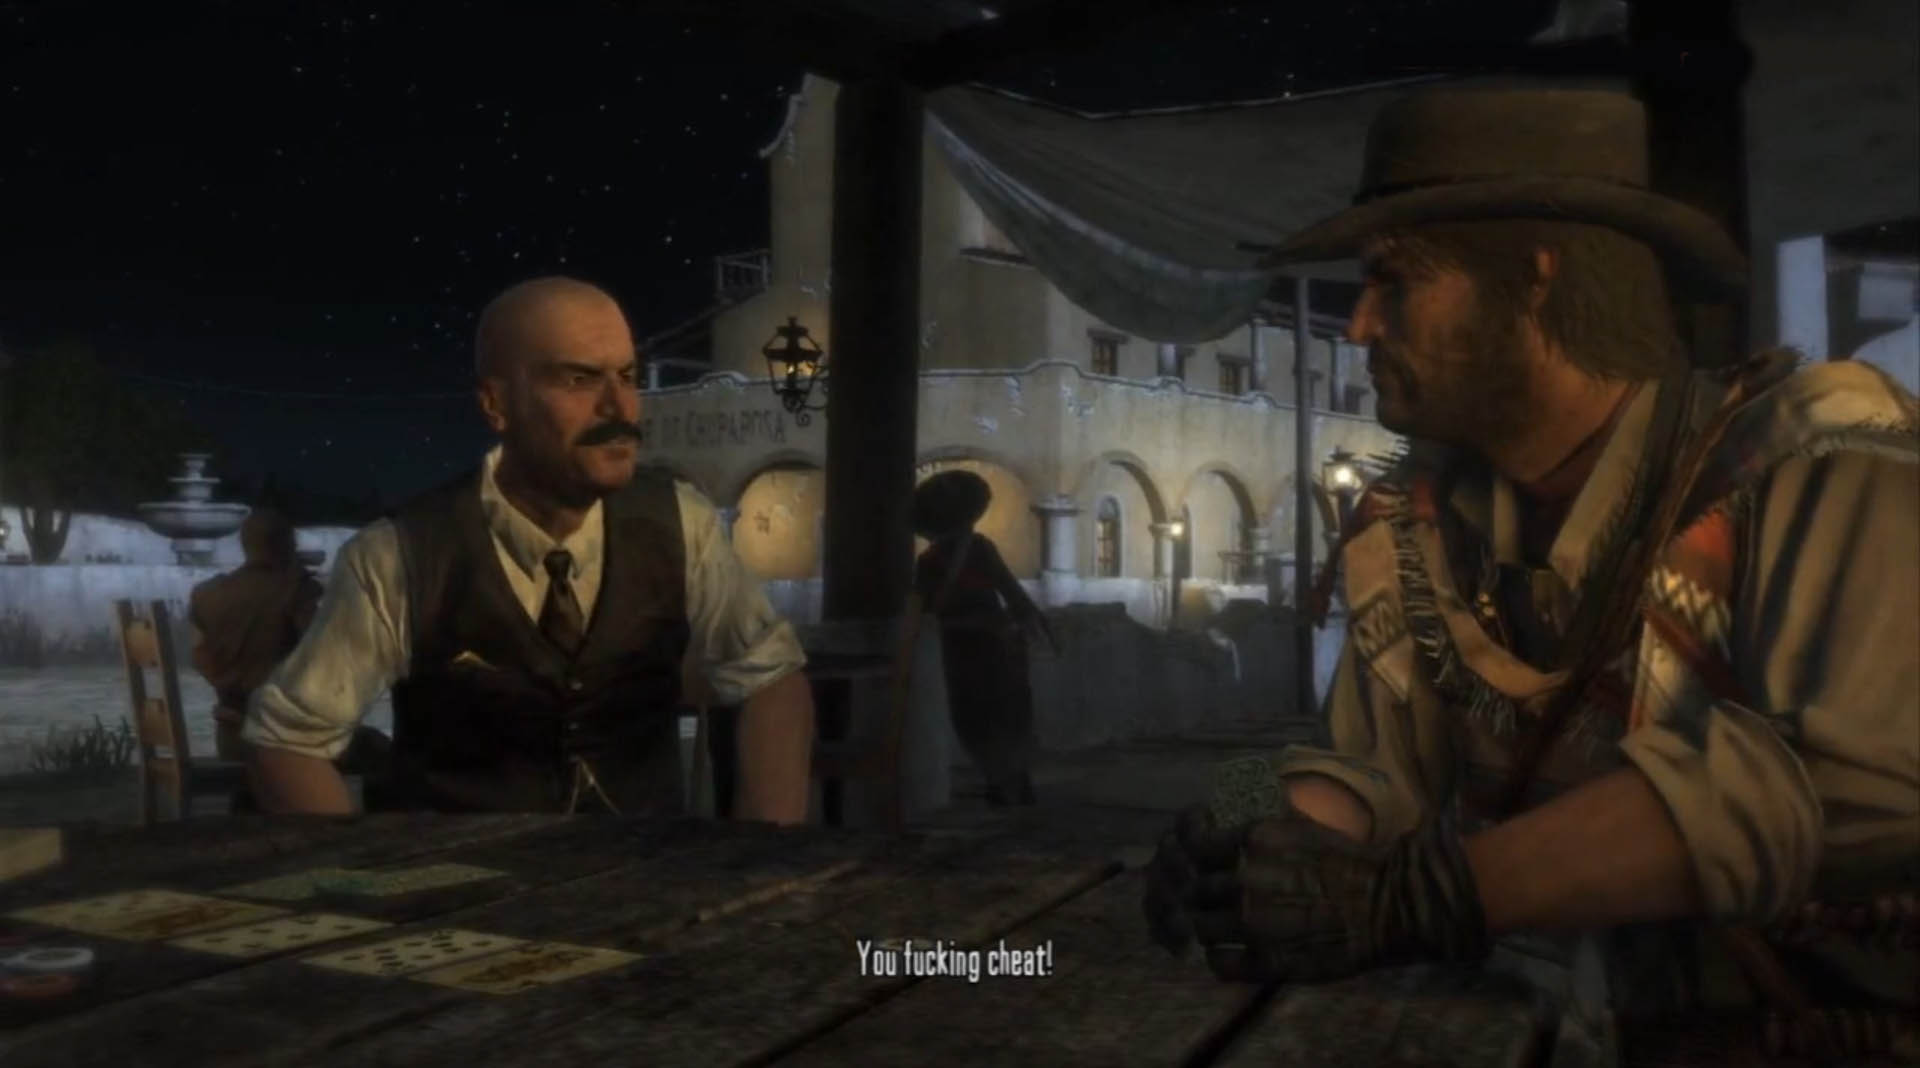 Red dead redemption keep getting caught cheating at poker ongame network poker download